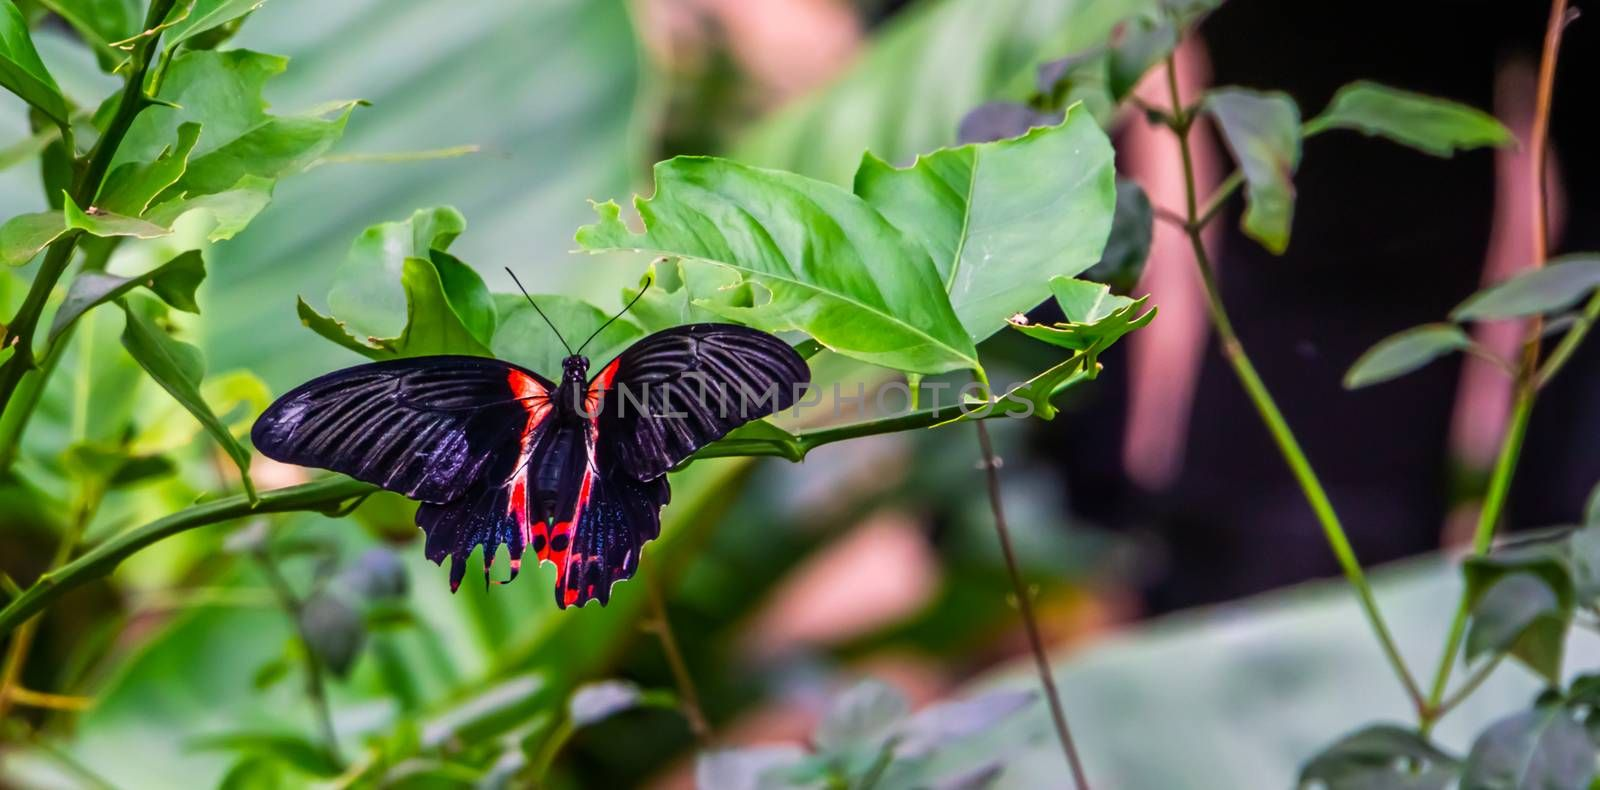 closeup of a red scarlet butterfly sitting on a leaf, tropical insect specie from Asia